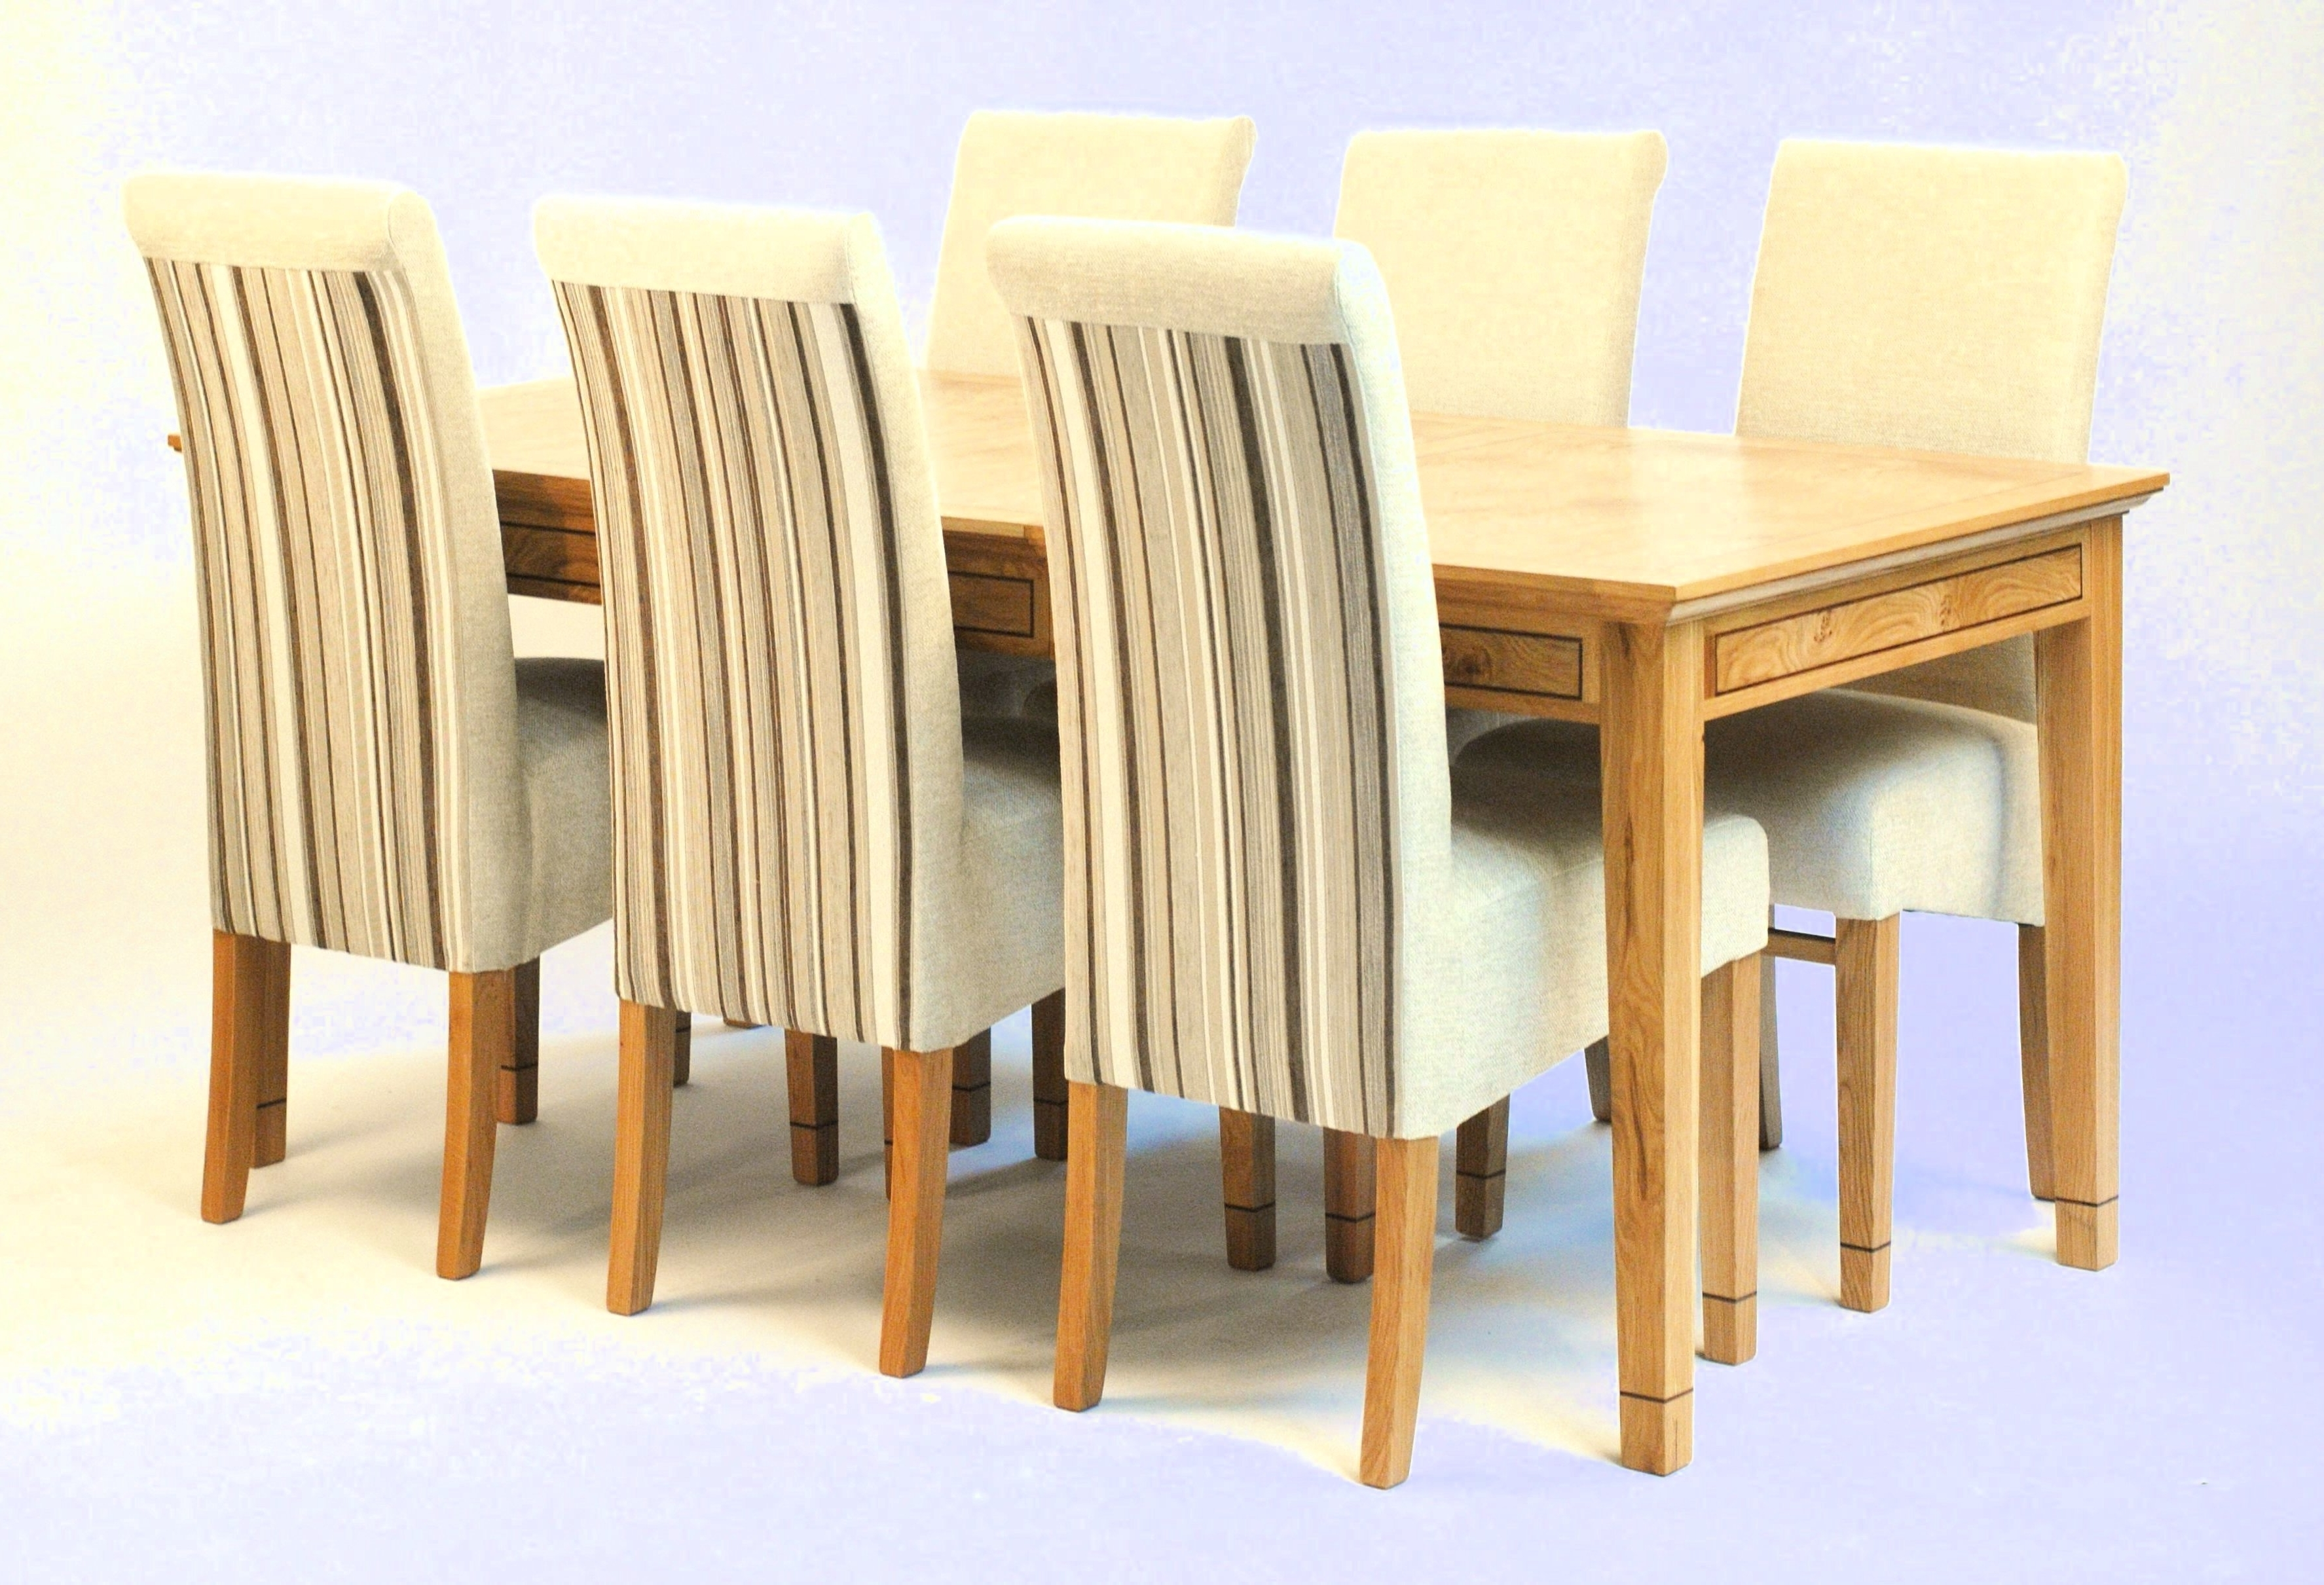 2018 Extending Dining Tables With 6 Chairs with regard to Oak Extending Dining Table & 6 Chairs